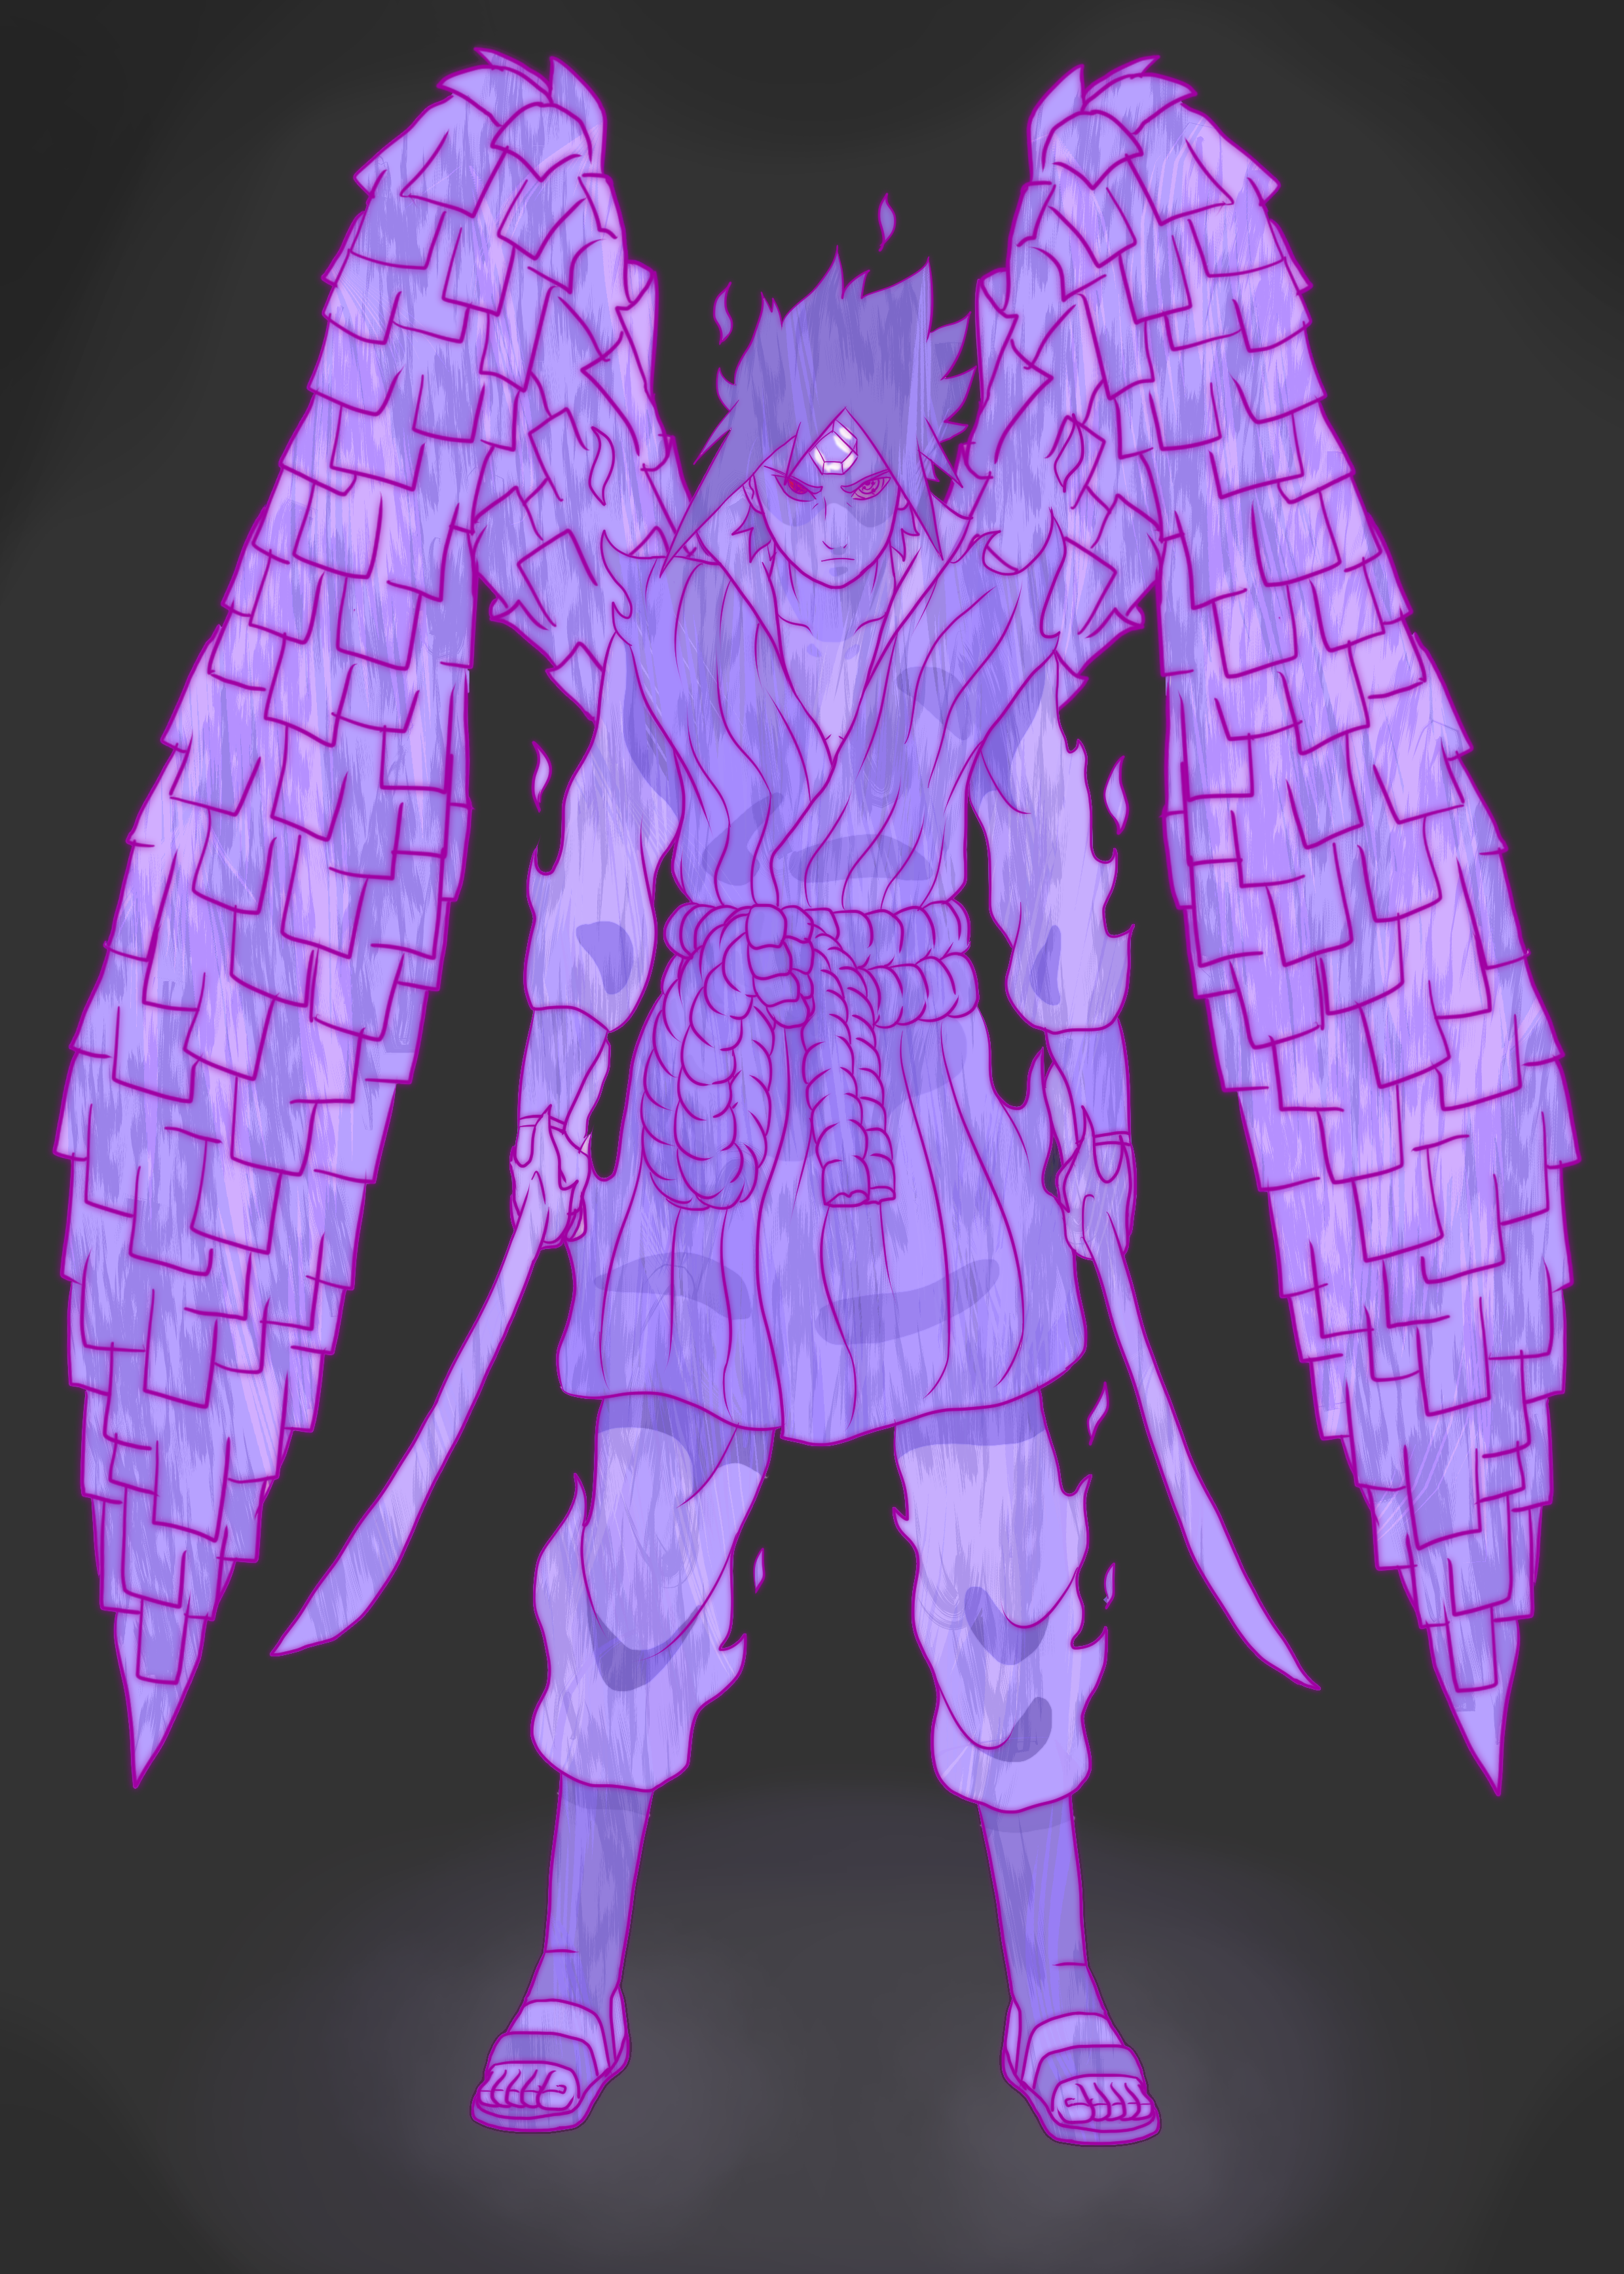 Perfect Susanoo should have been human sized like this